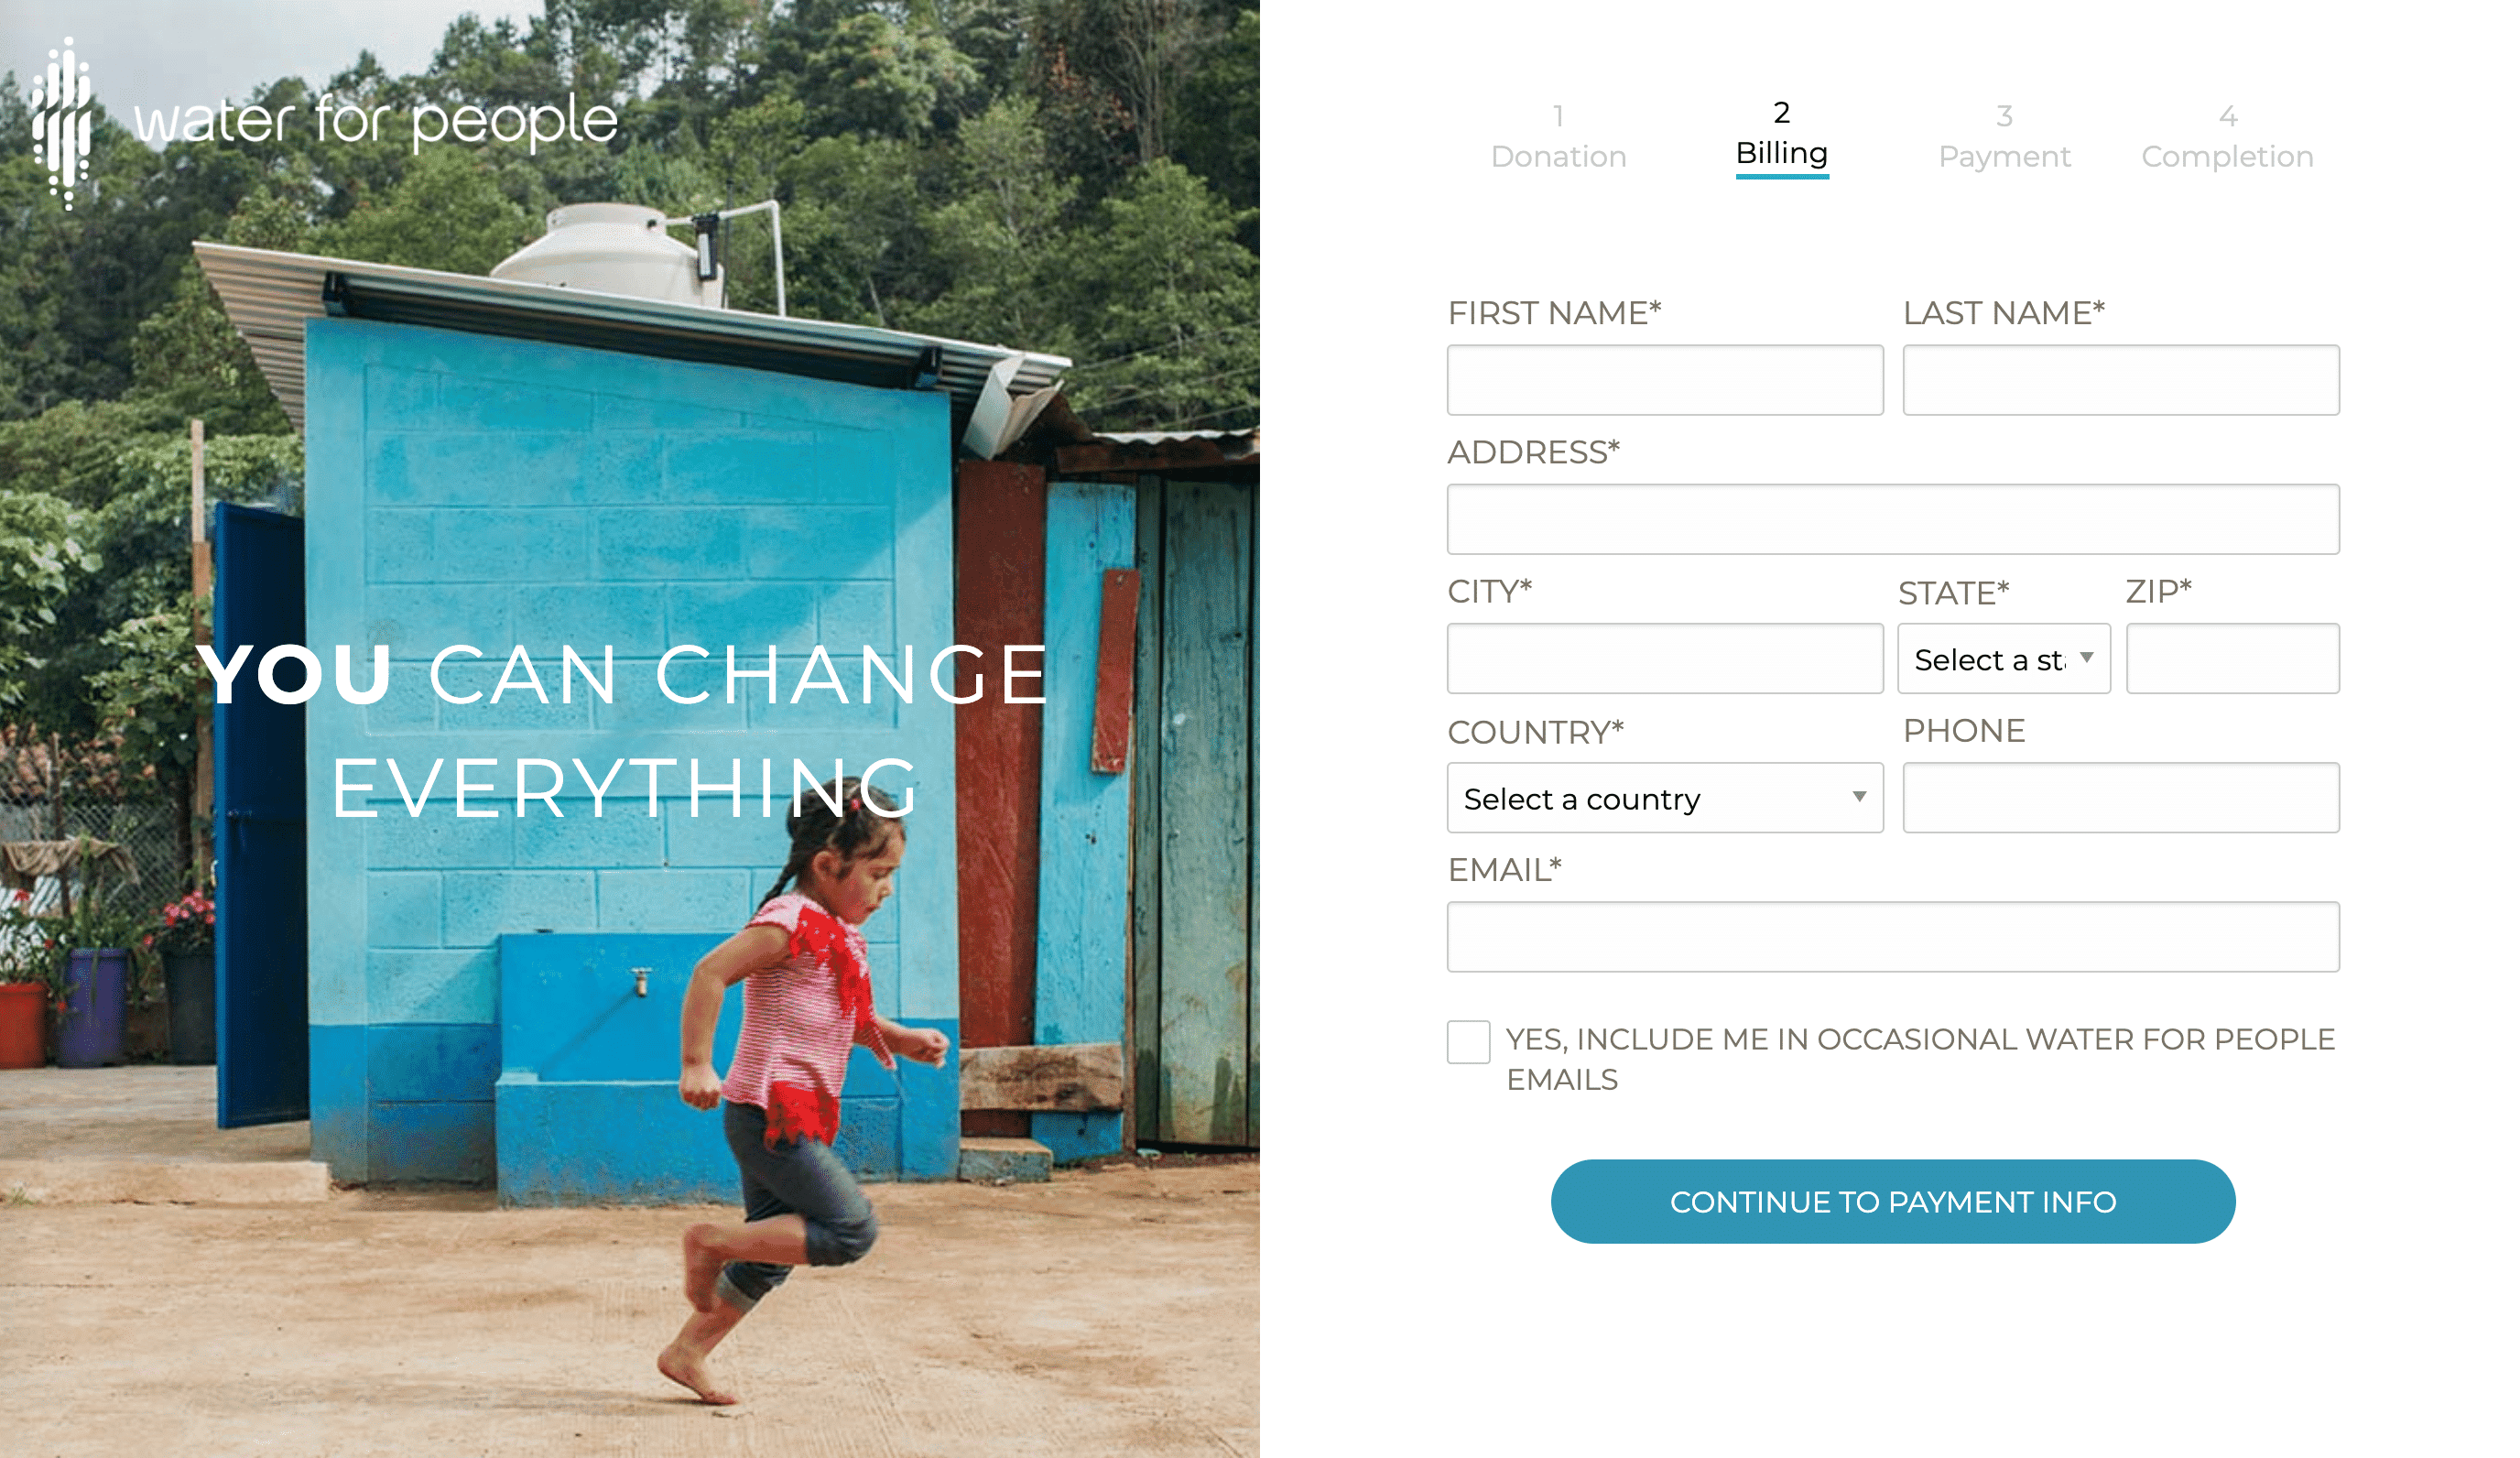 Screenshot of Fresh Donation Forms Engage Supporters with Impactful Images